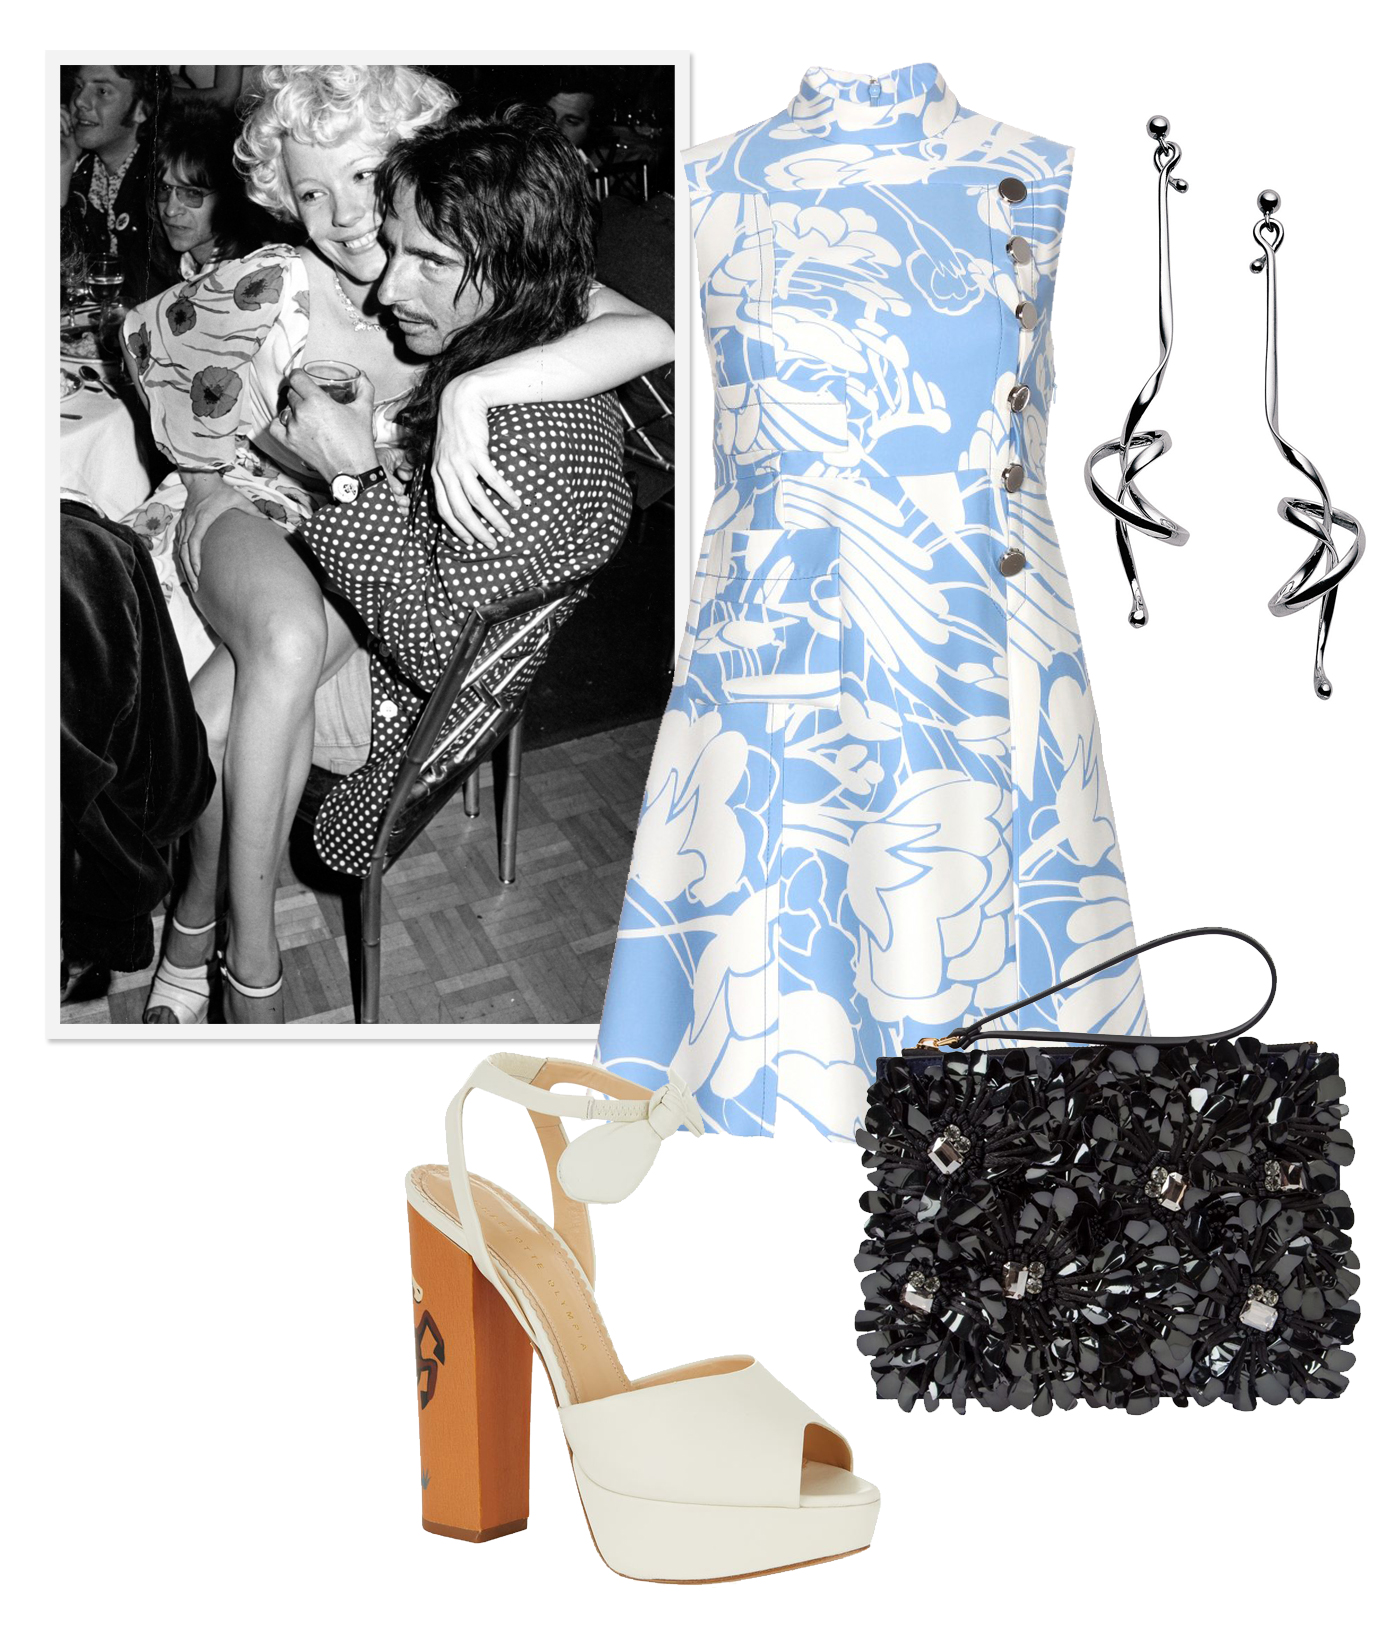 party-outfit-ideas-05.jpg